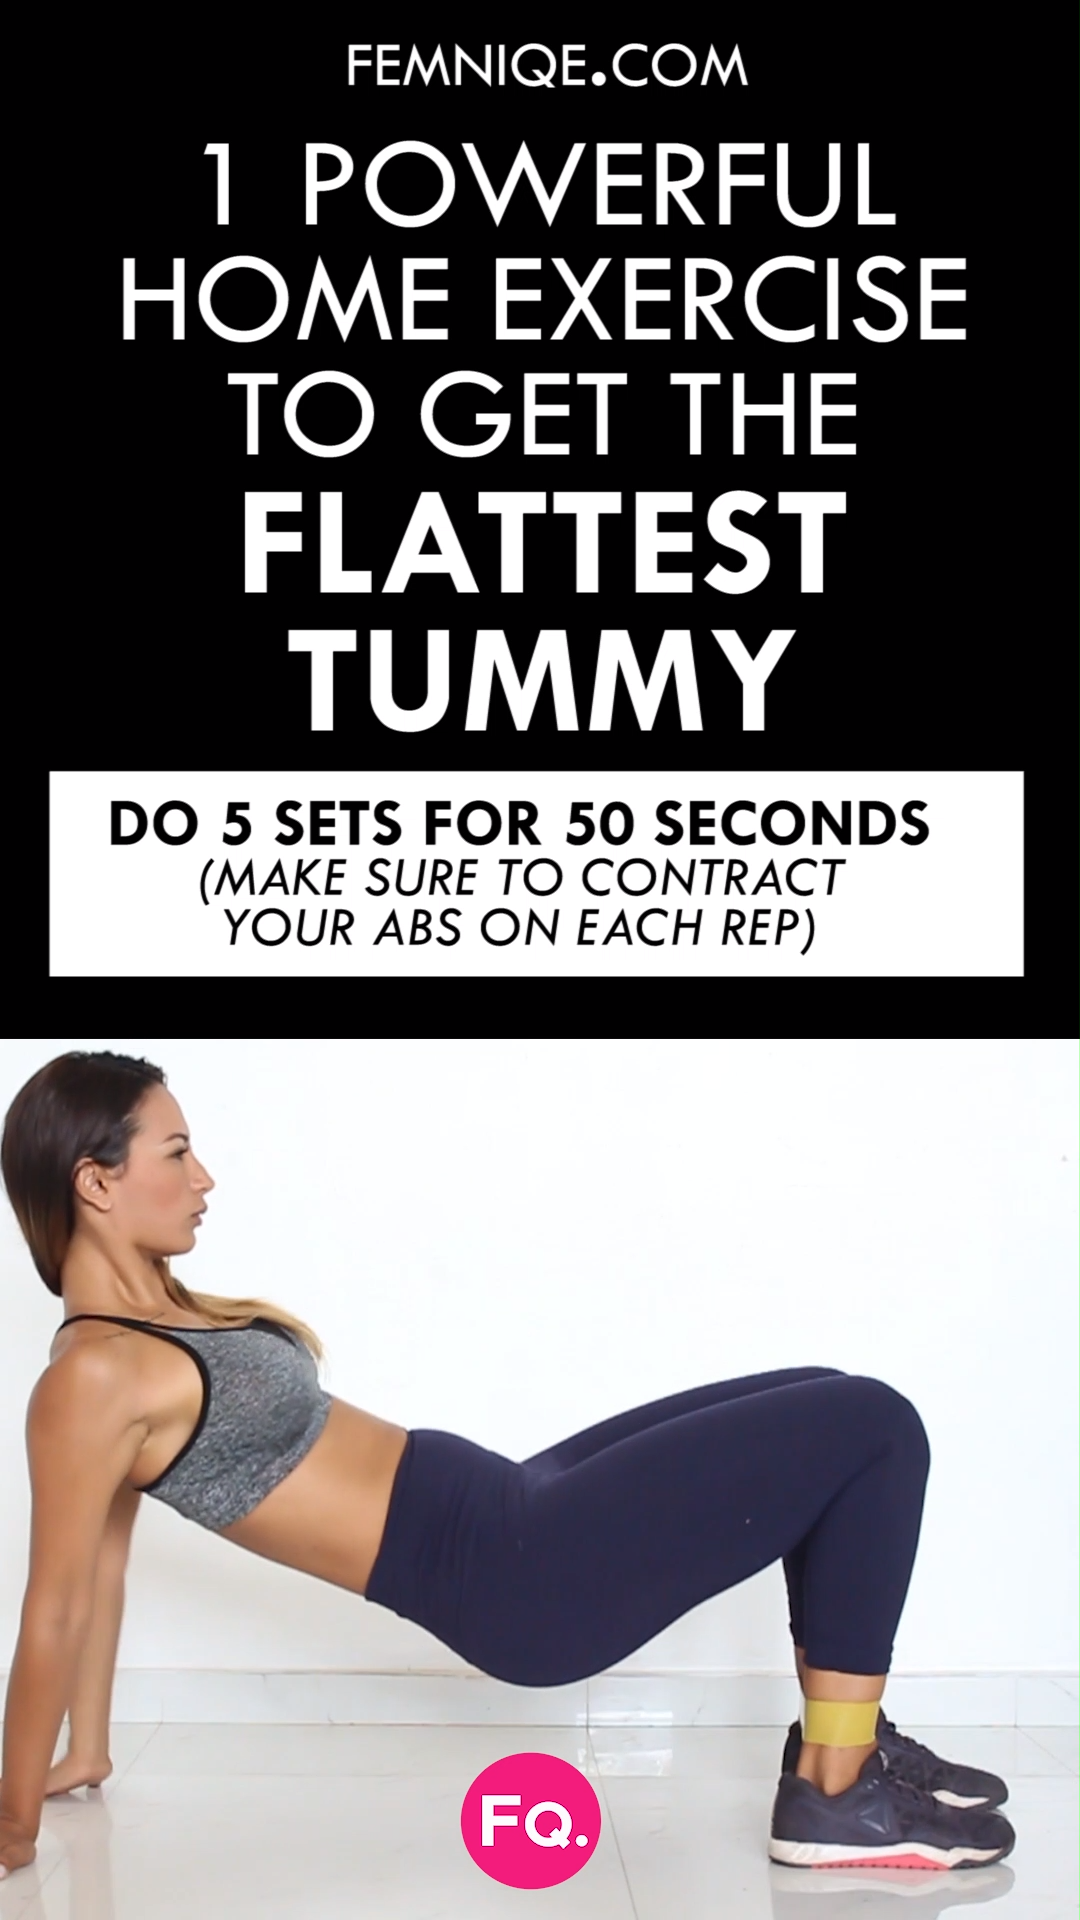 Photo of 3 Flat Tummy Exercises That Work (Drop 2-4 Inches Off Your Waistline!)